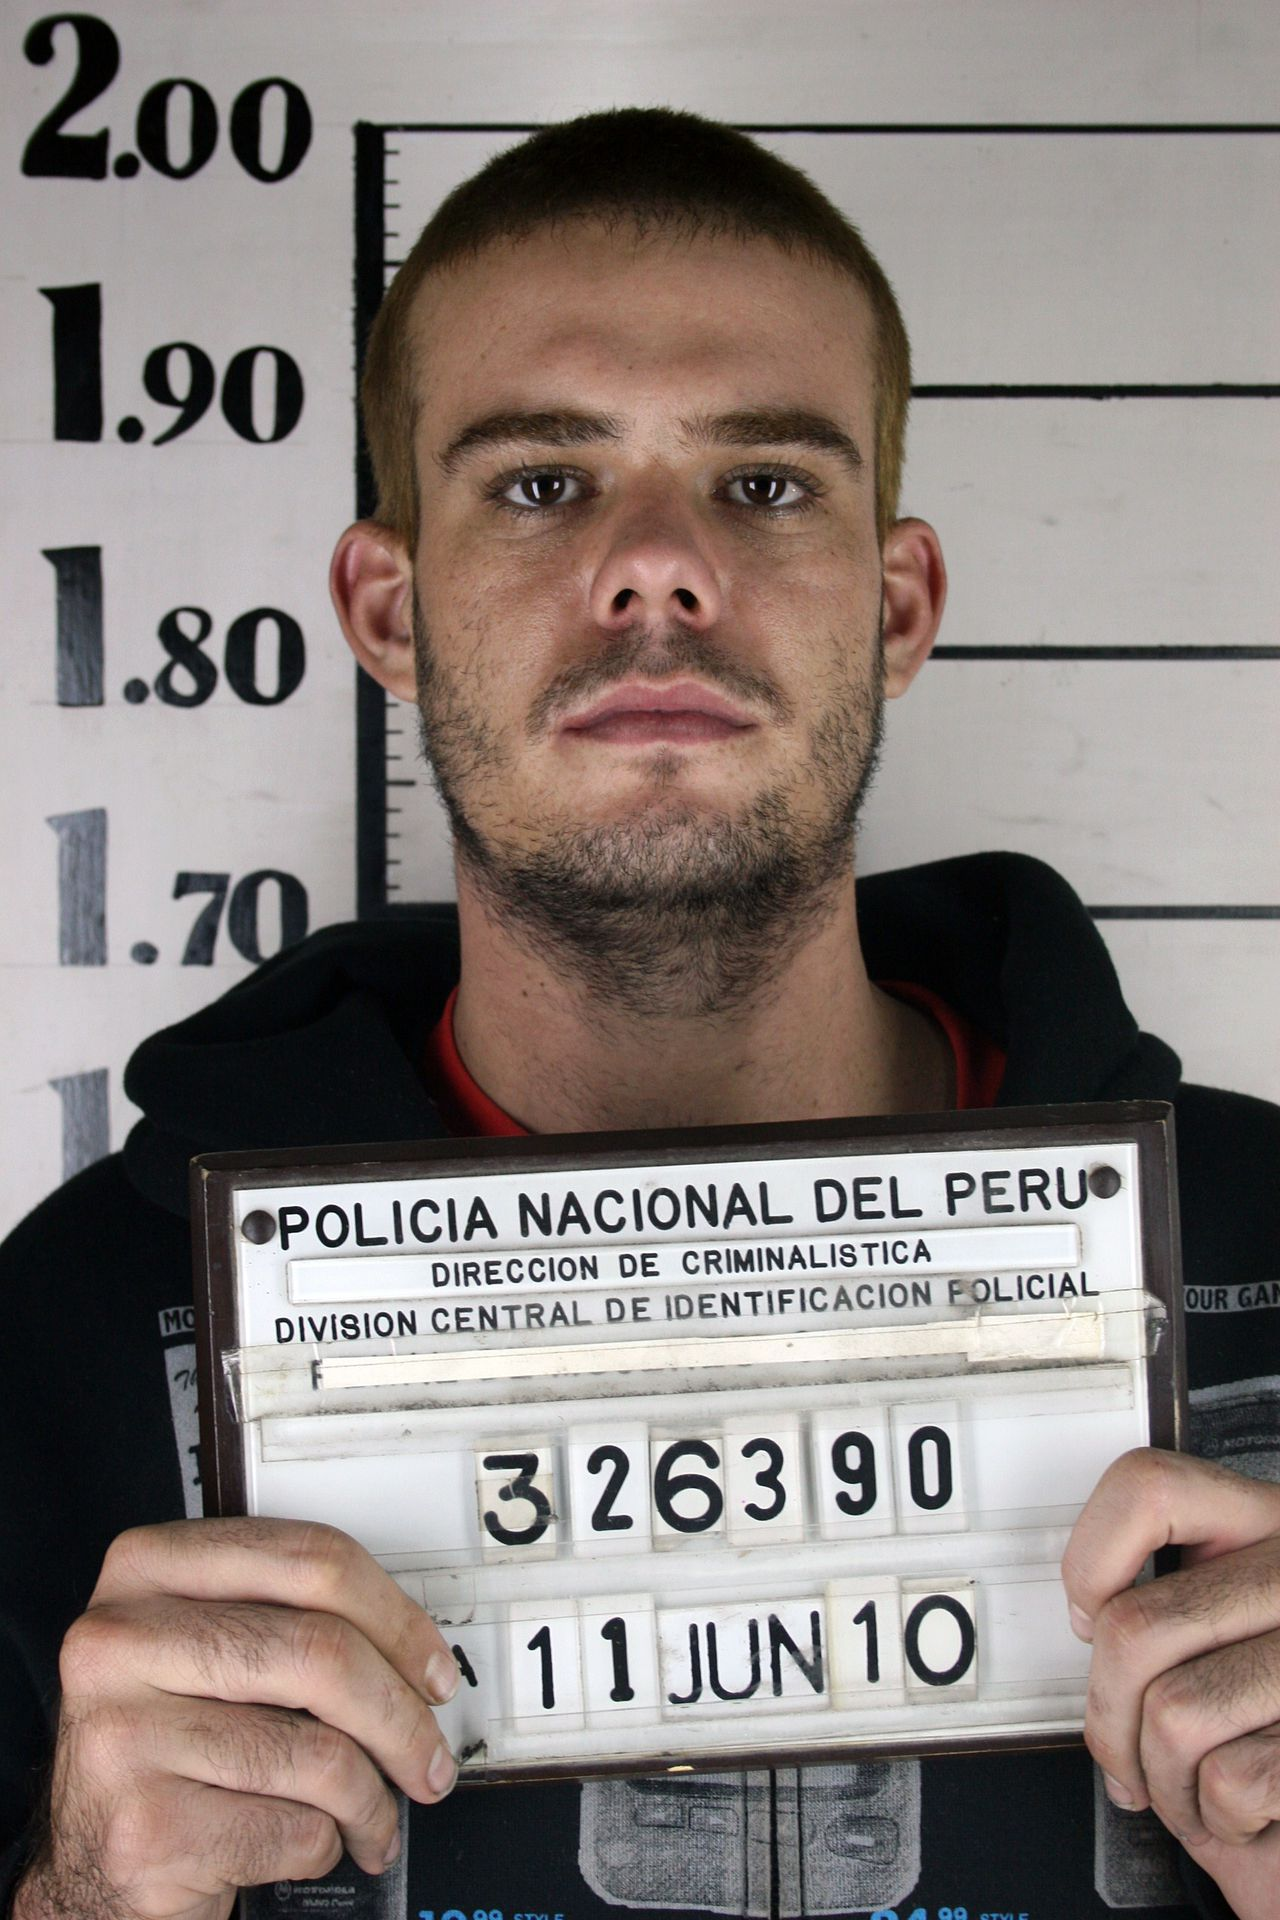 Handout photo released by Peruvian America Television, channel 4, taken on June 11, 2010, of confessed killer Dutch Joran van der Sloot, holding an inmate number at the prosecutor's office in Lima, moments before he was transferred to the Miguel Castro Castro prison in the outskirts of the city. Van der Sloot, 22, was charged with the murder of Peruvian Stephany Flores, 21. US investigators also are following Van der Sloot for the disappearance of US Natalee Holloway in Aruba in 2005, when he was acquitted for lack of proof. AFP PHOTO / AMERICA TELEVISION